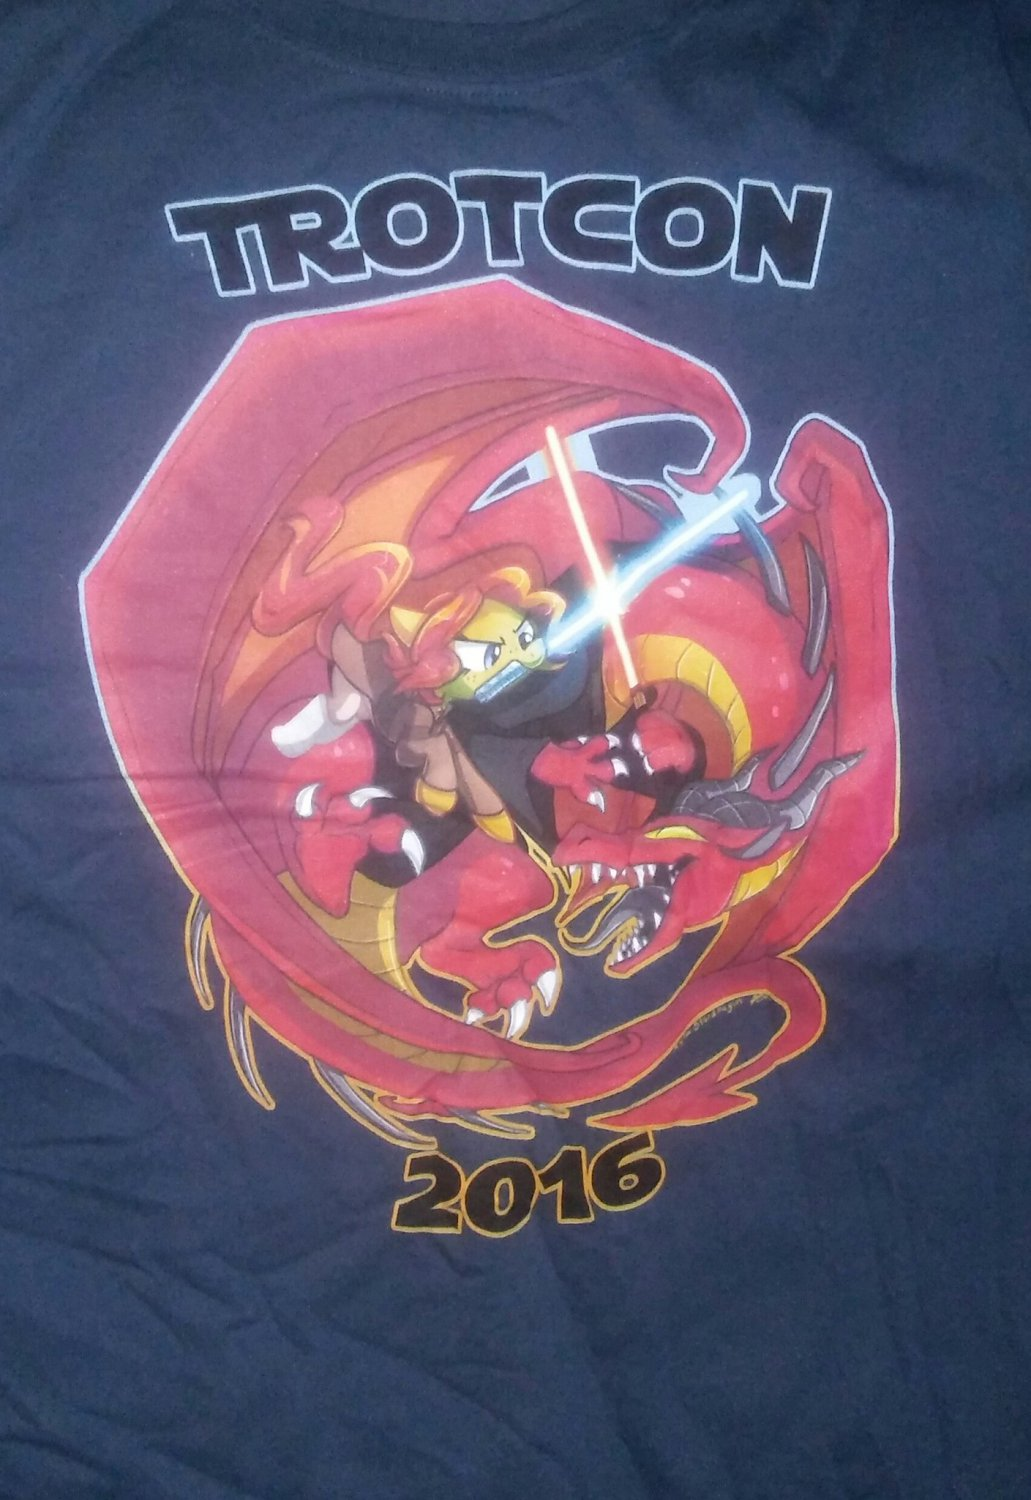 Trotcon 2016  Shirt - 5XL